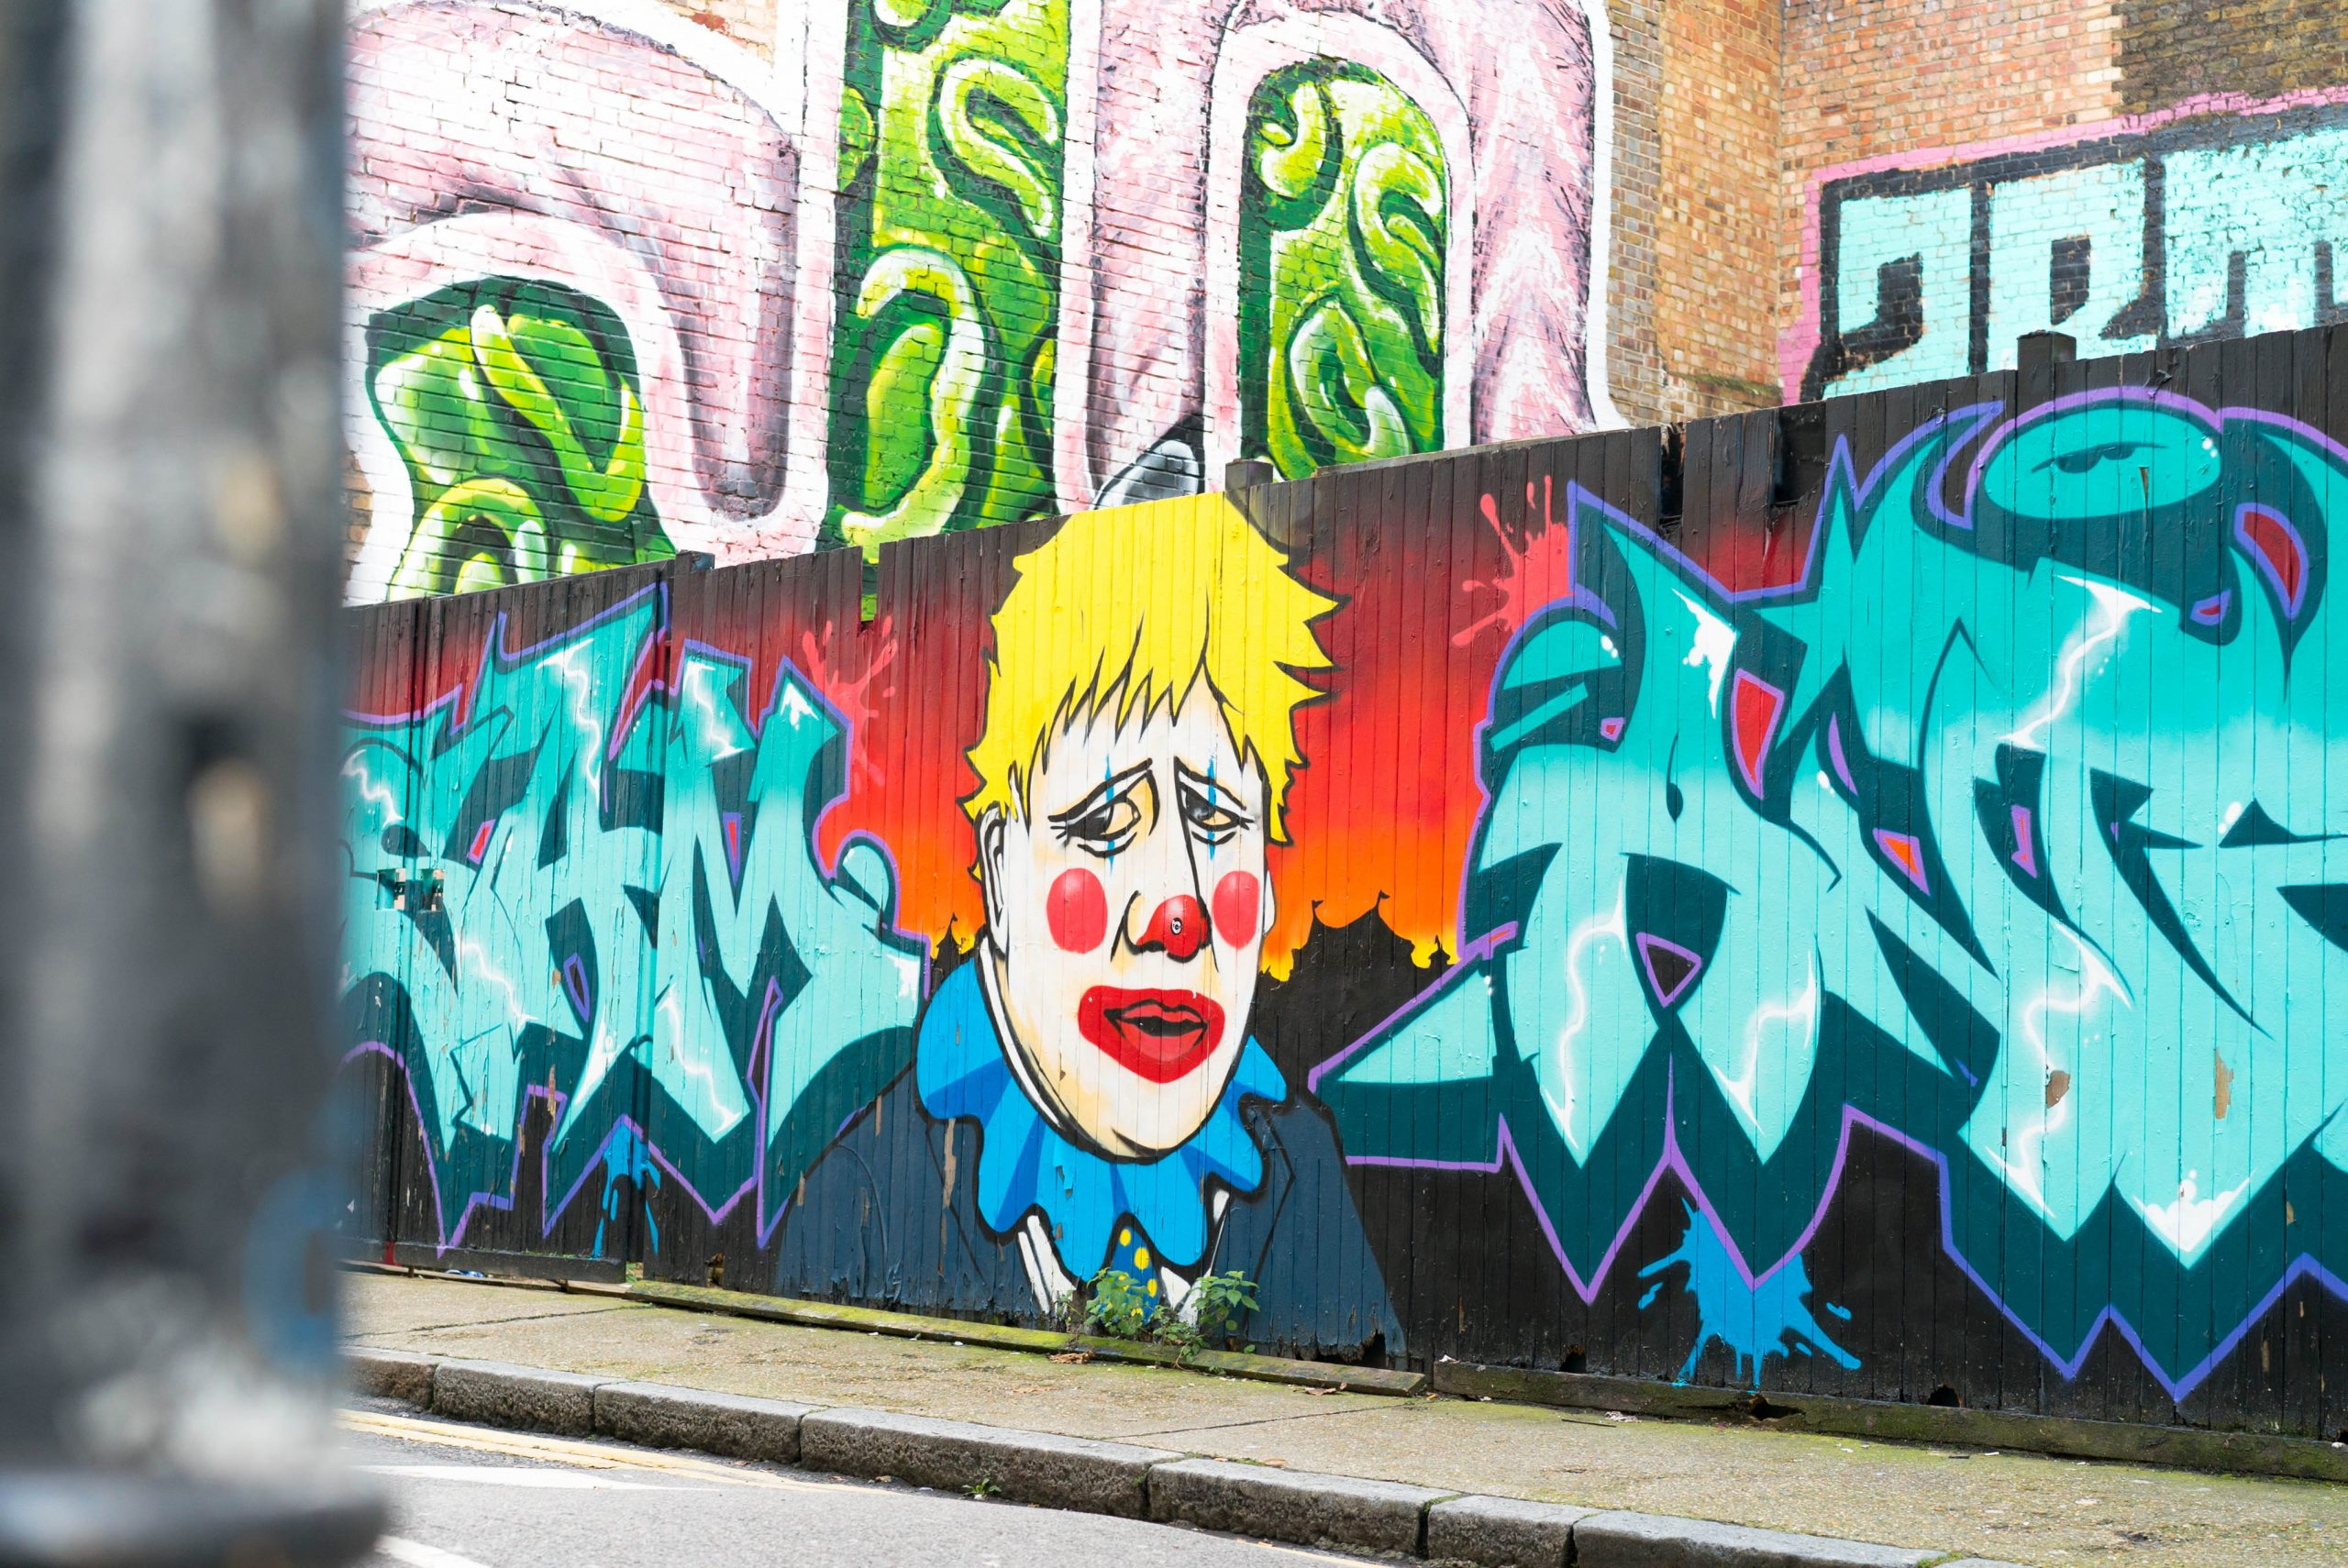 Street art in brick lane showing boris johnson as a clow with a white face red cheeks lipstick and yellow hair behind a orange and red burning city